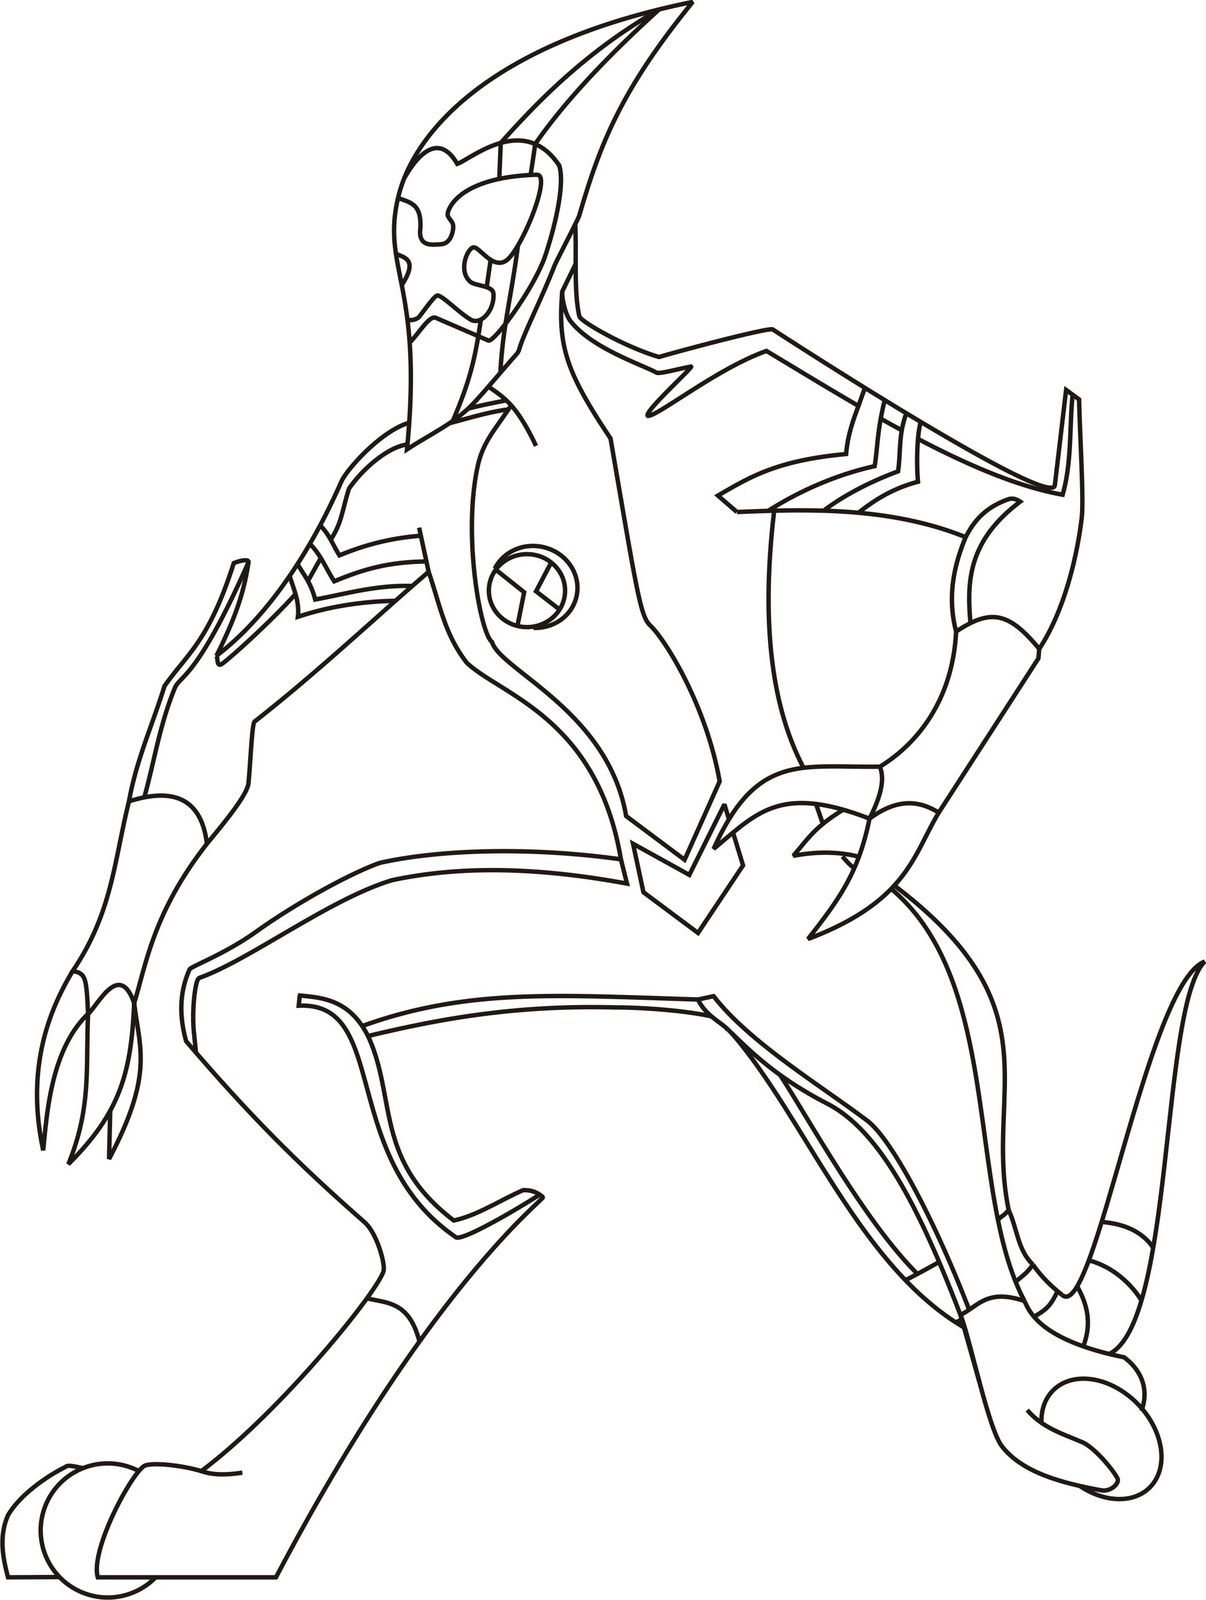 Ben 10 Preparing To Pursue The Enemy Ben 10 Coloring Pages